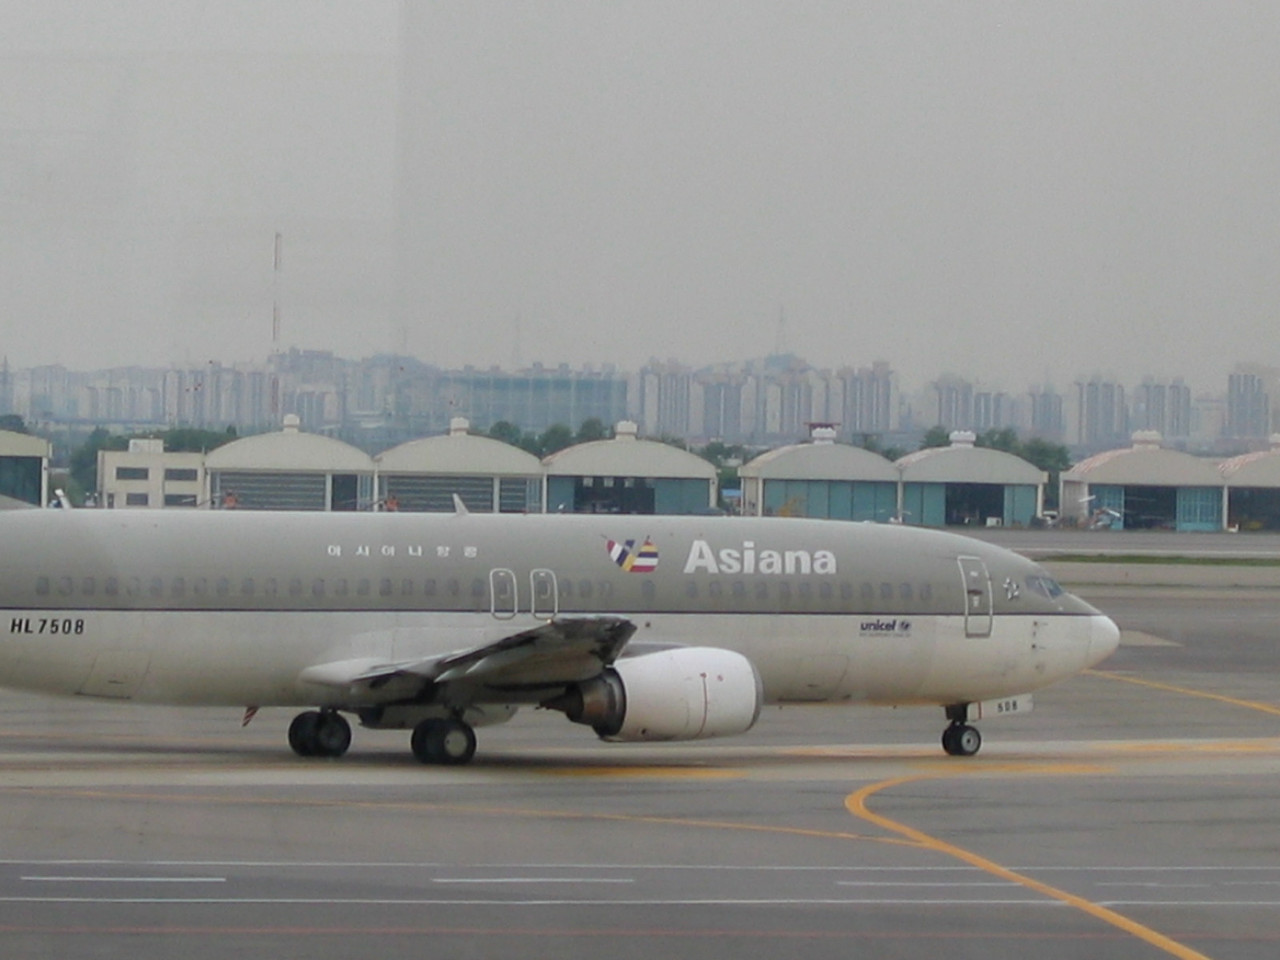 Asiana is the main competitor for KAL in South Korea.